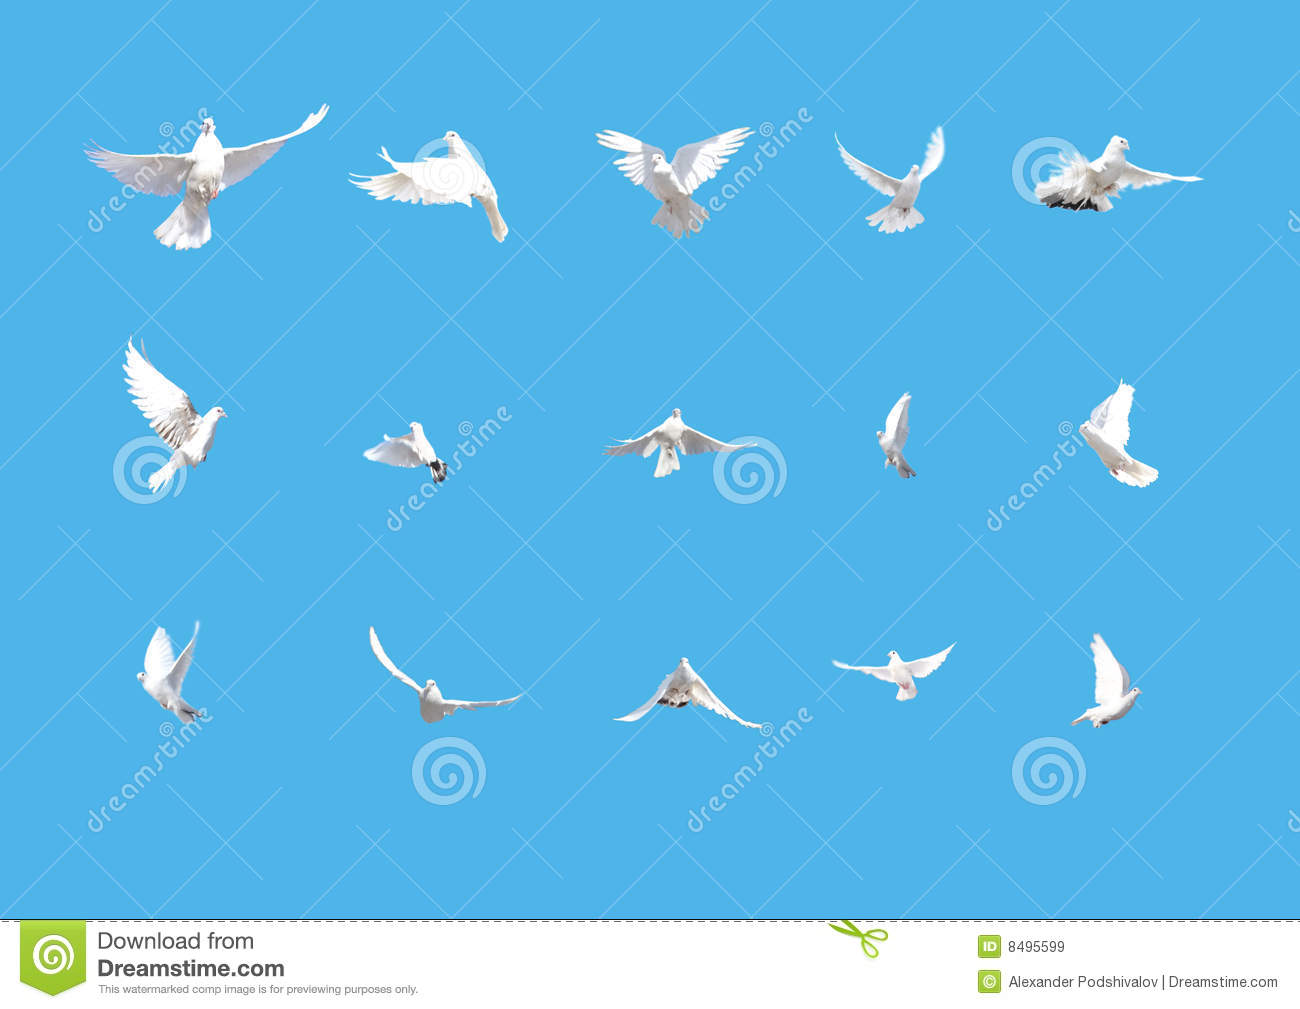 Royalty Free Stock Photo Nature Symbol Image2008285 additionally Stock Illustration Vector Illustration Marine Underwater Scene Cartoon Image49210852 together with Funeral Program Template as well Royalty Free Stock Photo Mint Green Polka Dots Image4912355 besides Stock Illustration Iceberg Infographic Menu Hand Draw Sketch Vector Floating Sea Surface Under Water Illustration Image93086768. on deep blue background design